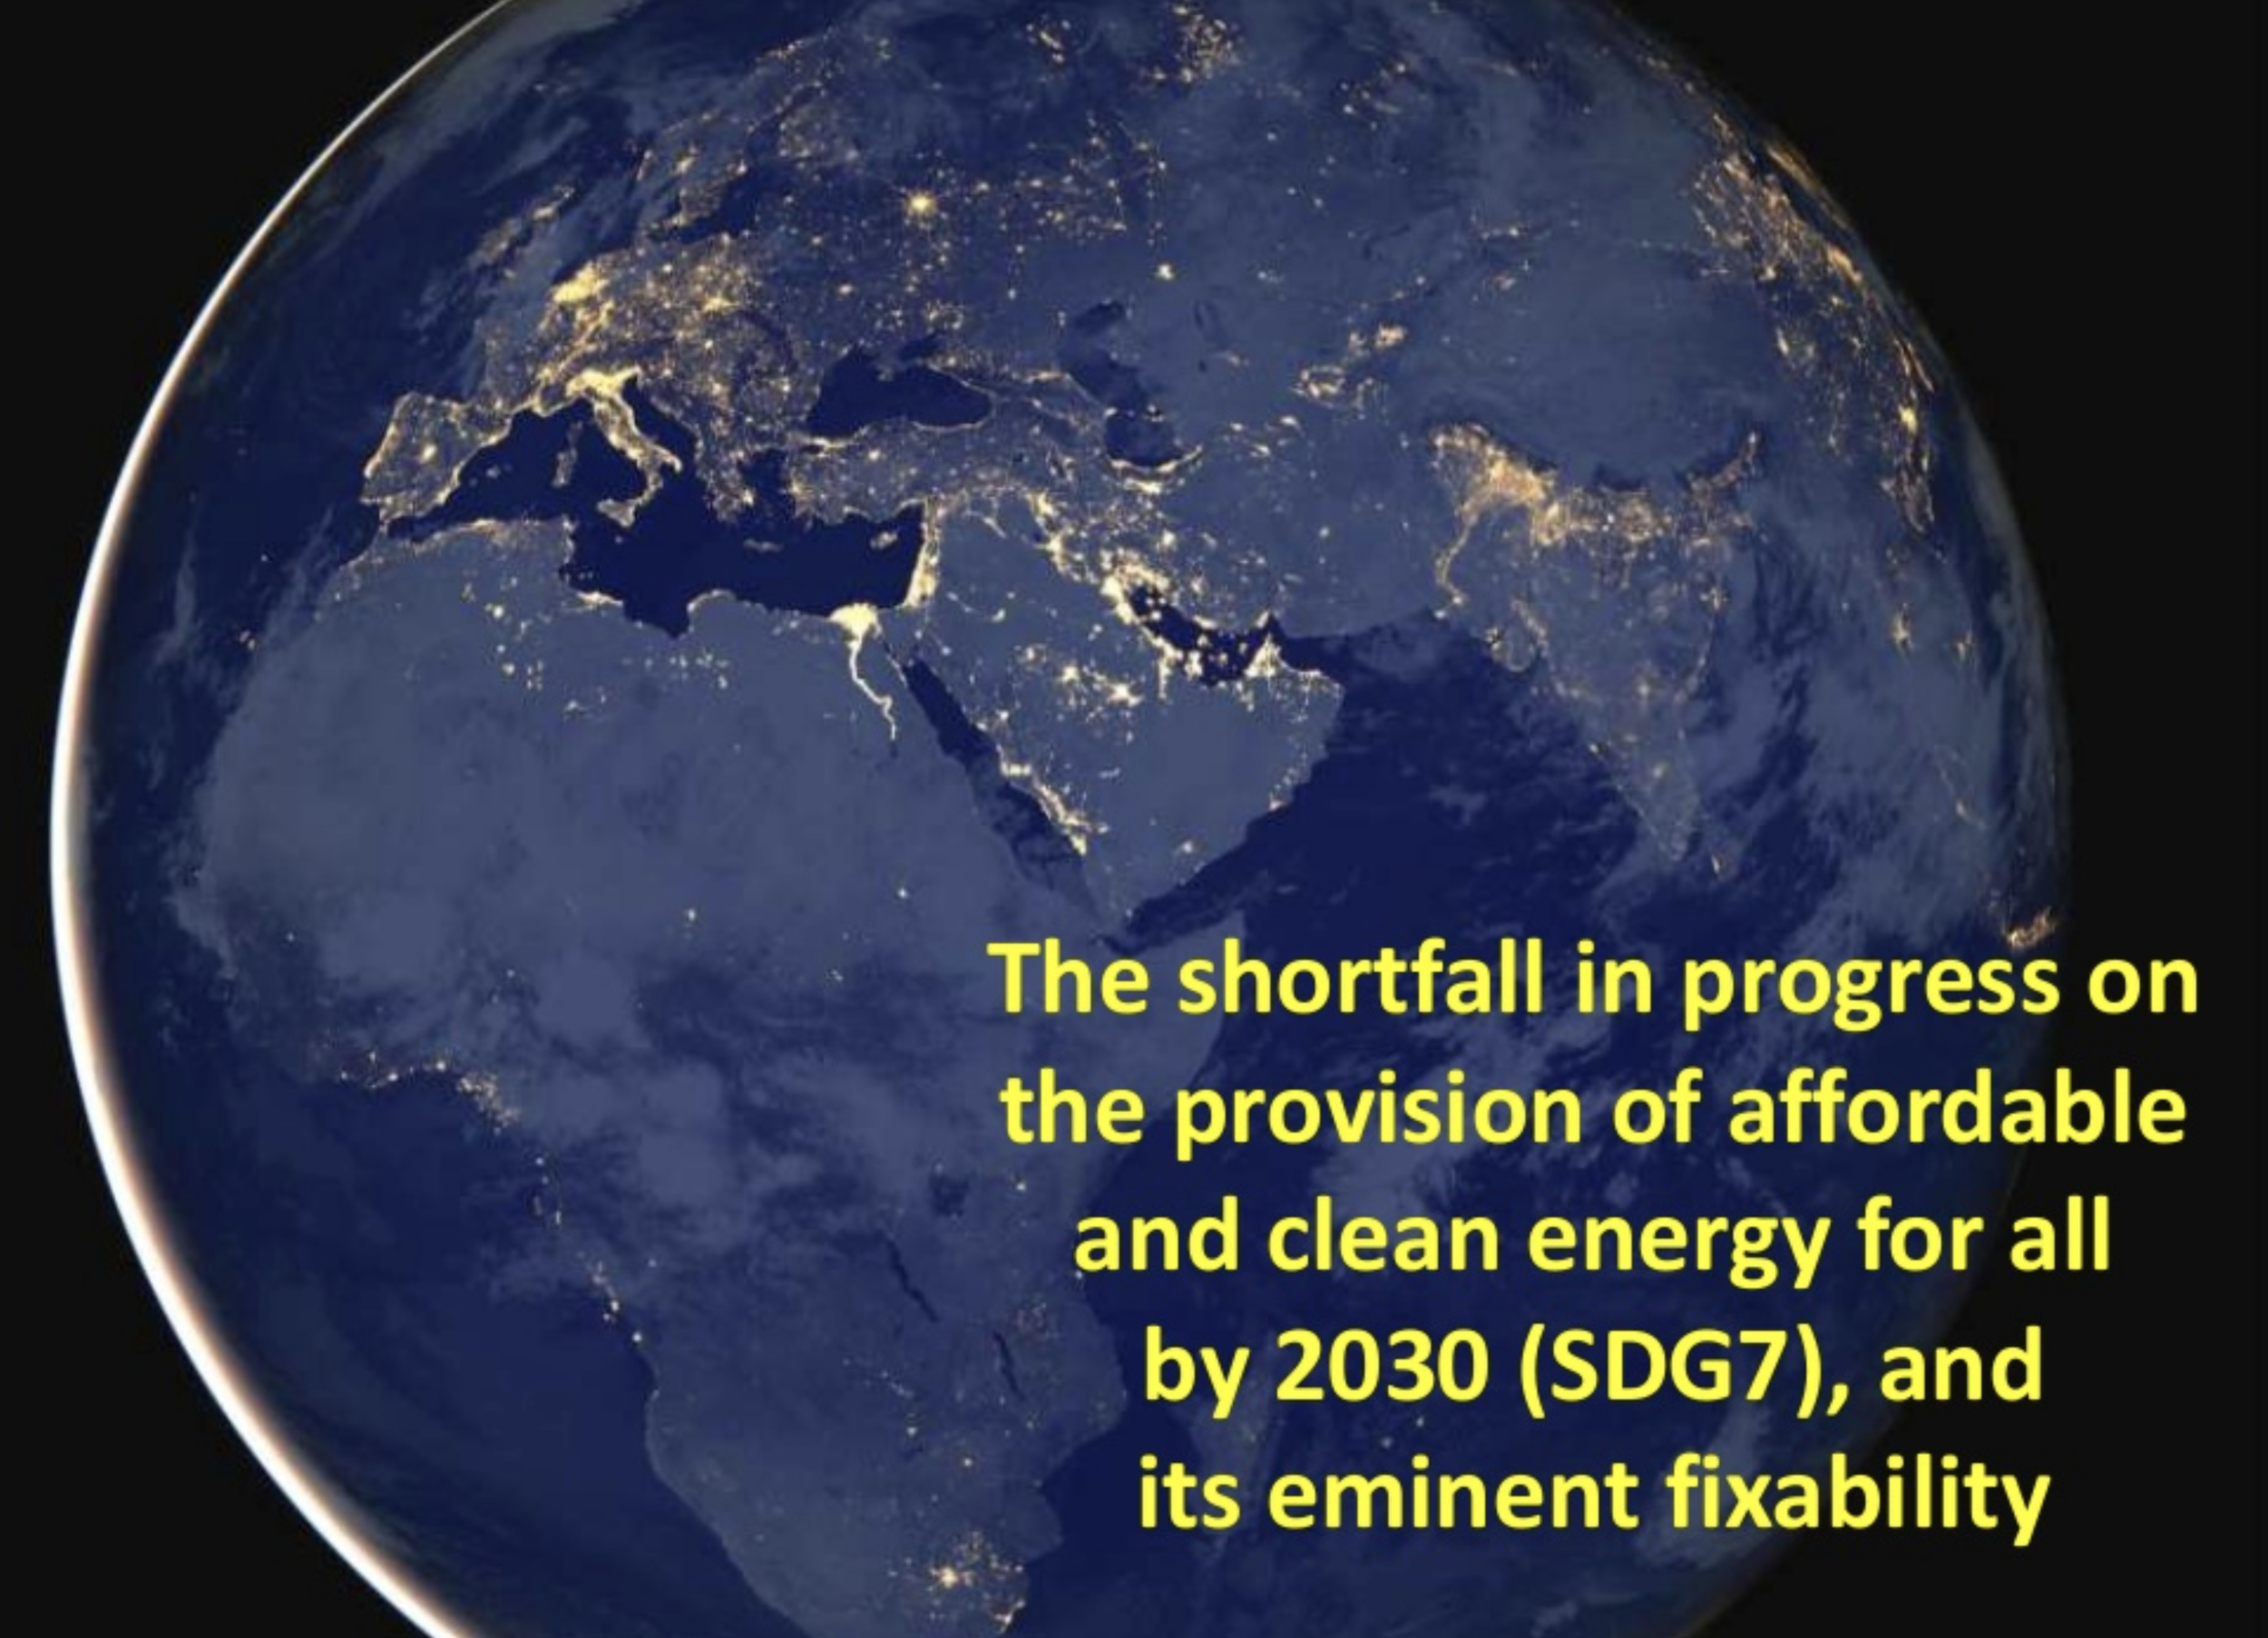 The shortfall in progress on the provision of affordable and clean energy for all - Jeremy Legget, June 2019A review of the four sub-targets of SDG7, the extent to which the international community is behind the pace on each, and how this can be fixed, with emphasis on investment.